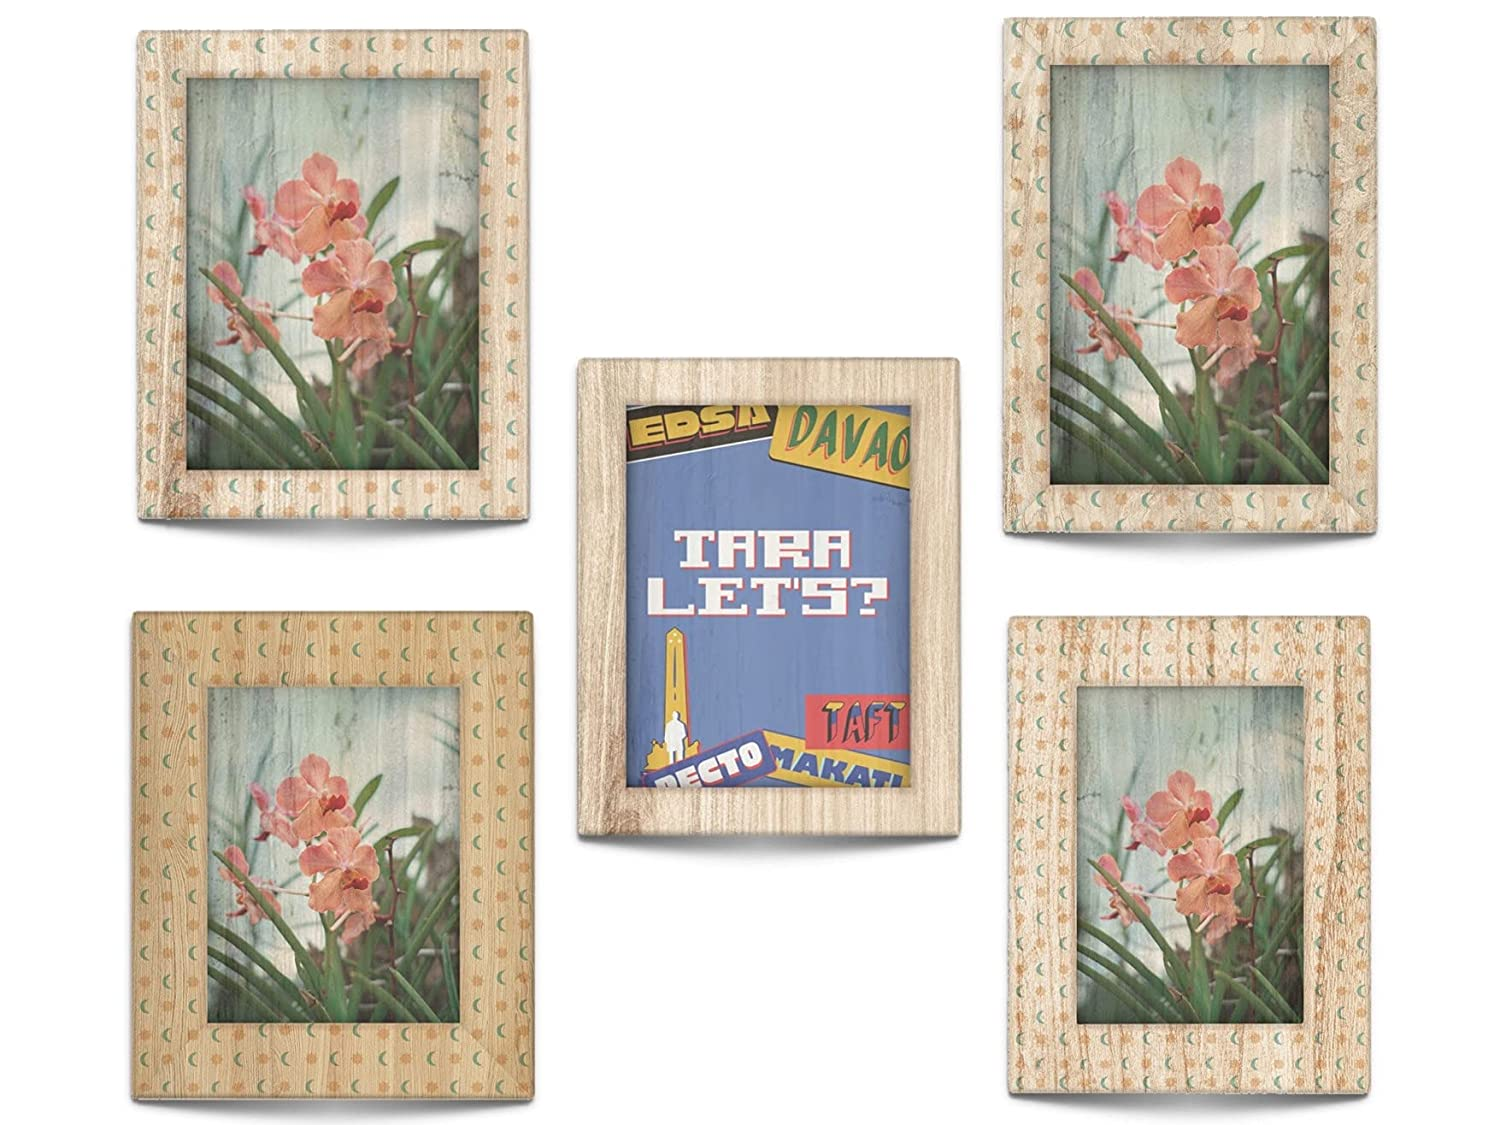 Personalized Water Hyacinth Canvas Great interest Wall Art Decor with Wooden Pi Cash special price